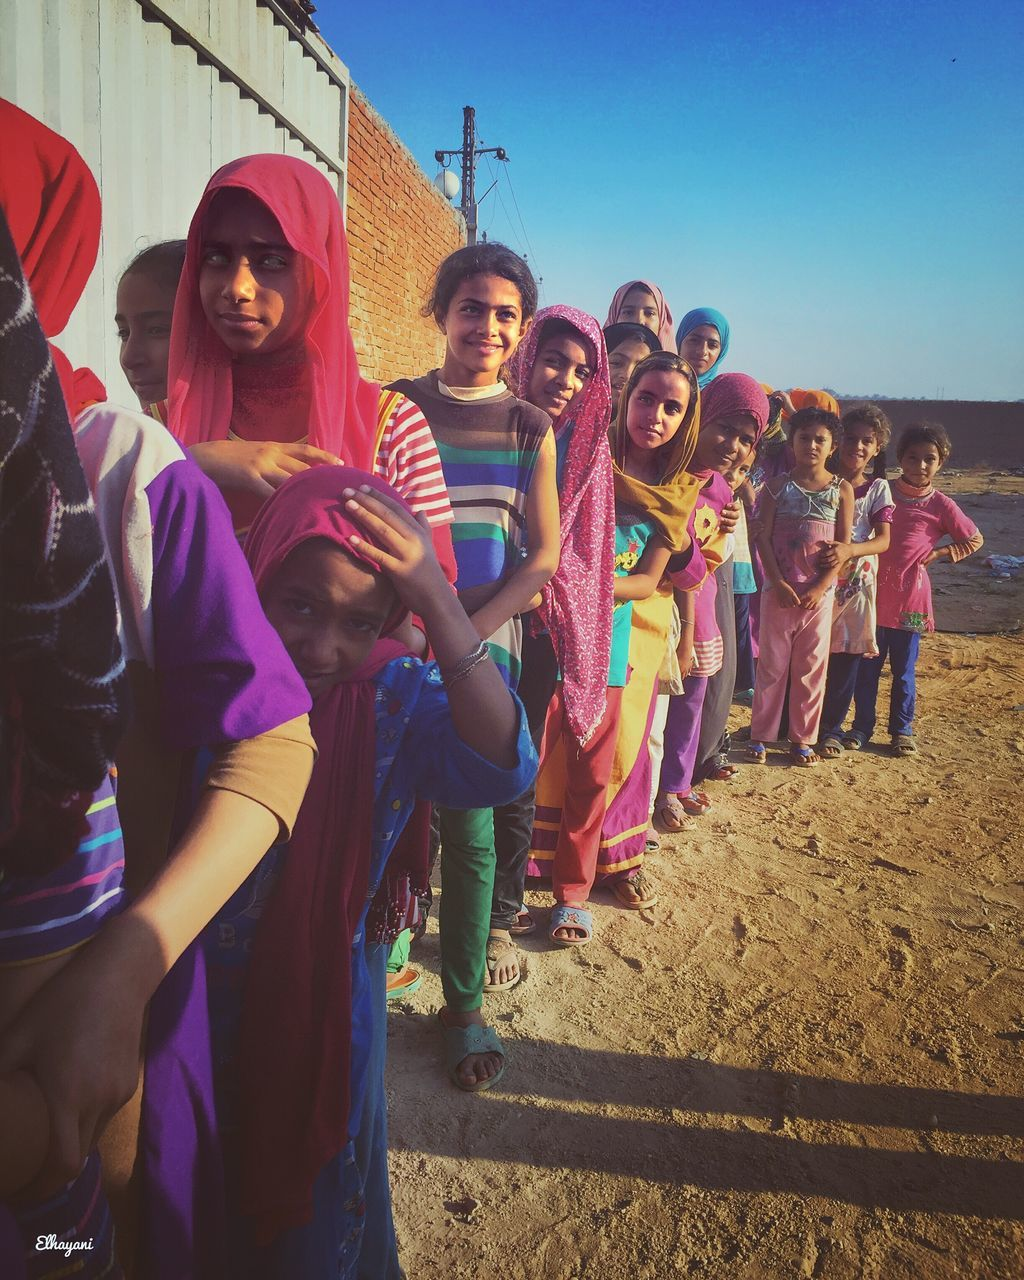 real people, outdoors, large group of people, multi colored, togetherness, day, young women, smiling, lifestyles, young adult, portrait, sky, holi, friendship, people